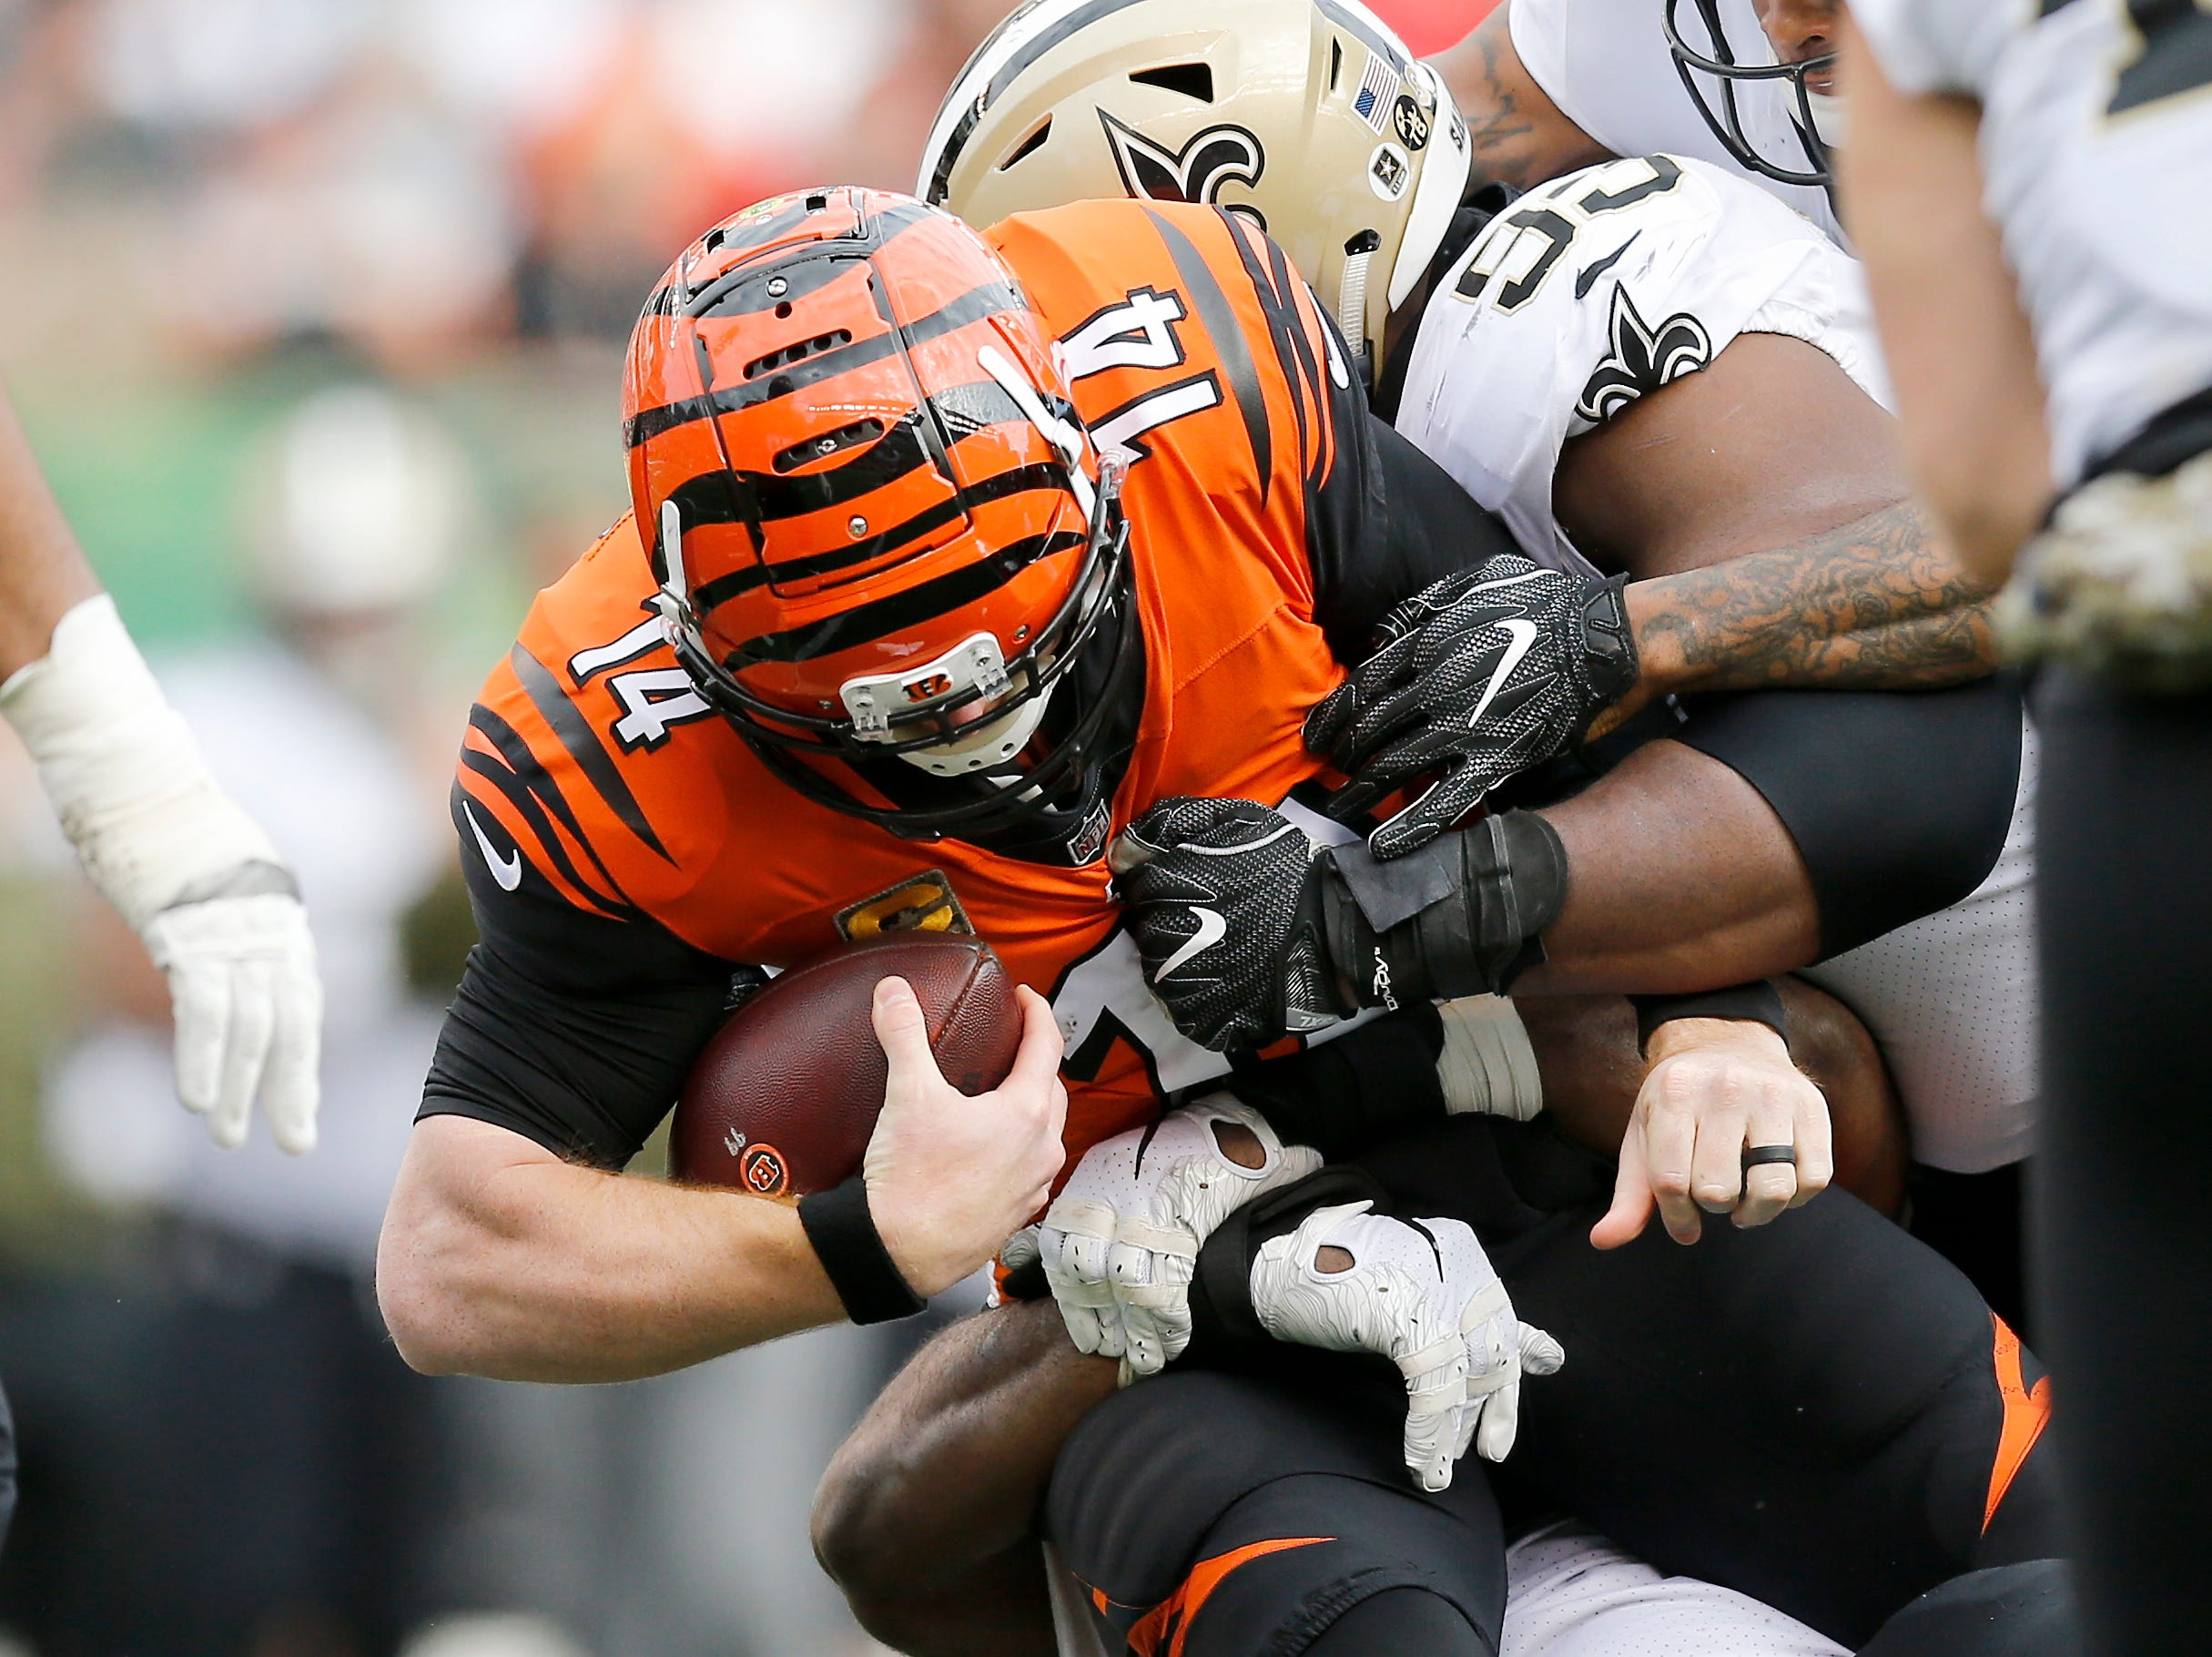 Cincinnati Bengals quarterback Andy Dalton (14) is sacked in the second quarter of the NFL Week 10 game between the Cincinnati Bengals and the New Orleans Saints at Paul Brown Stadium in downtown Cincinnati on Sunday, Nov. 11, 2018. The Saints led 35-7 at halftime.